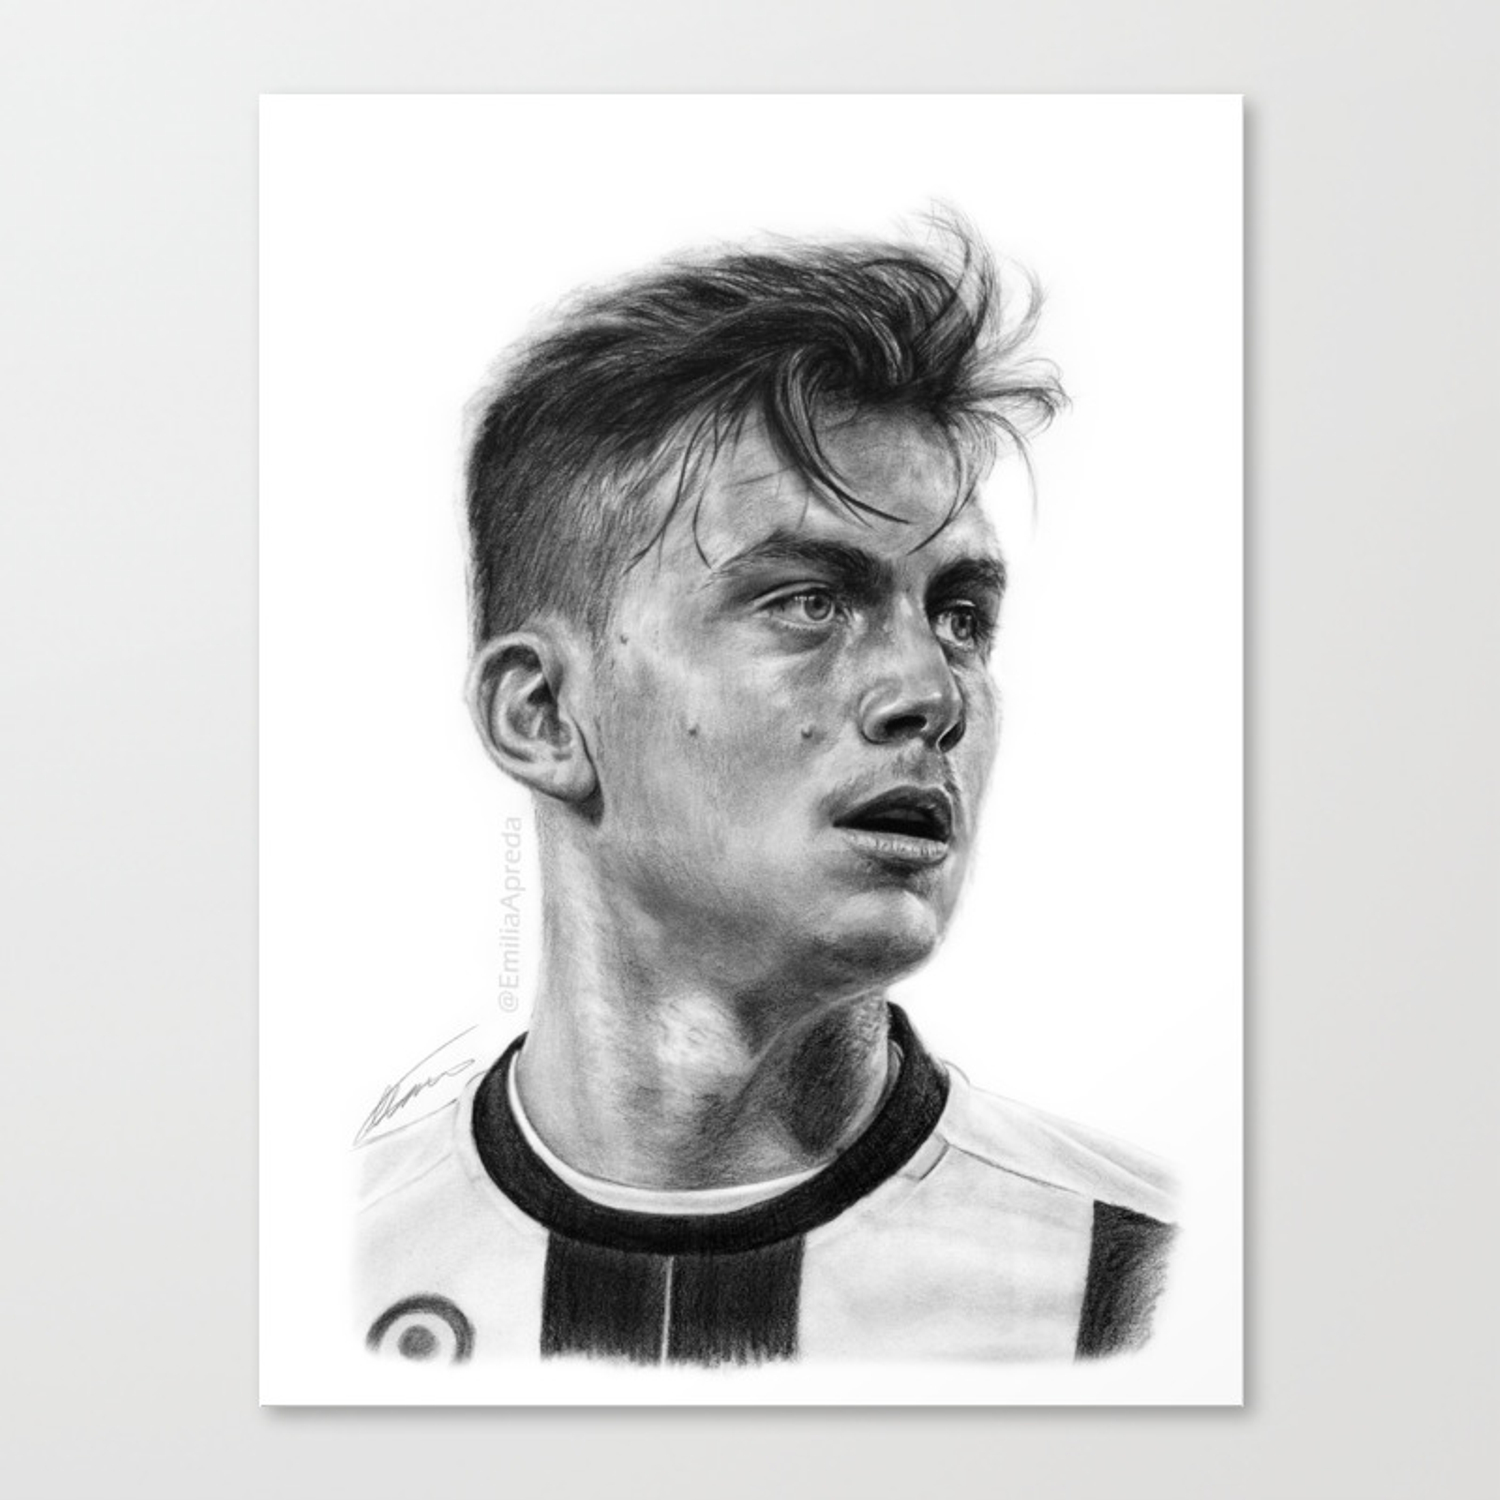 Paulo dybala pencil drawing canvas print